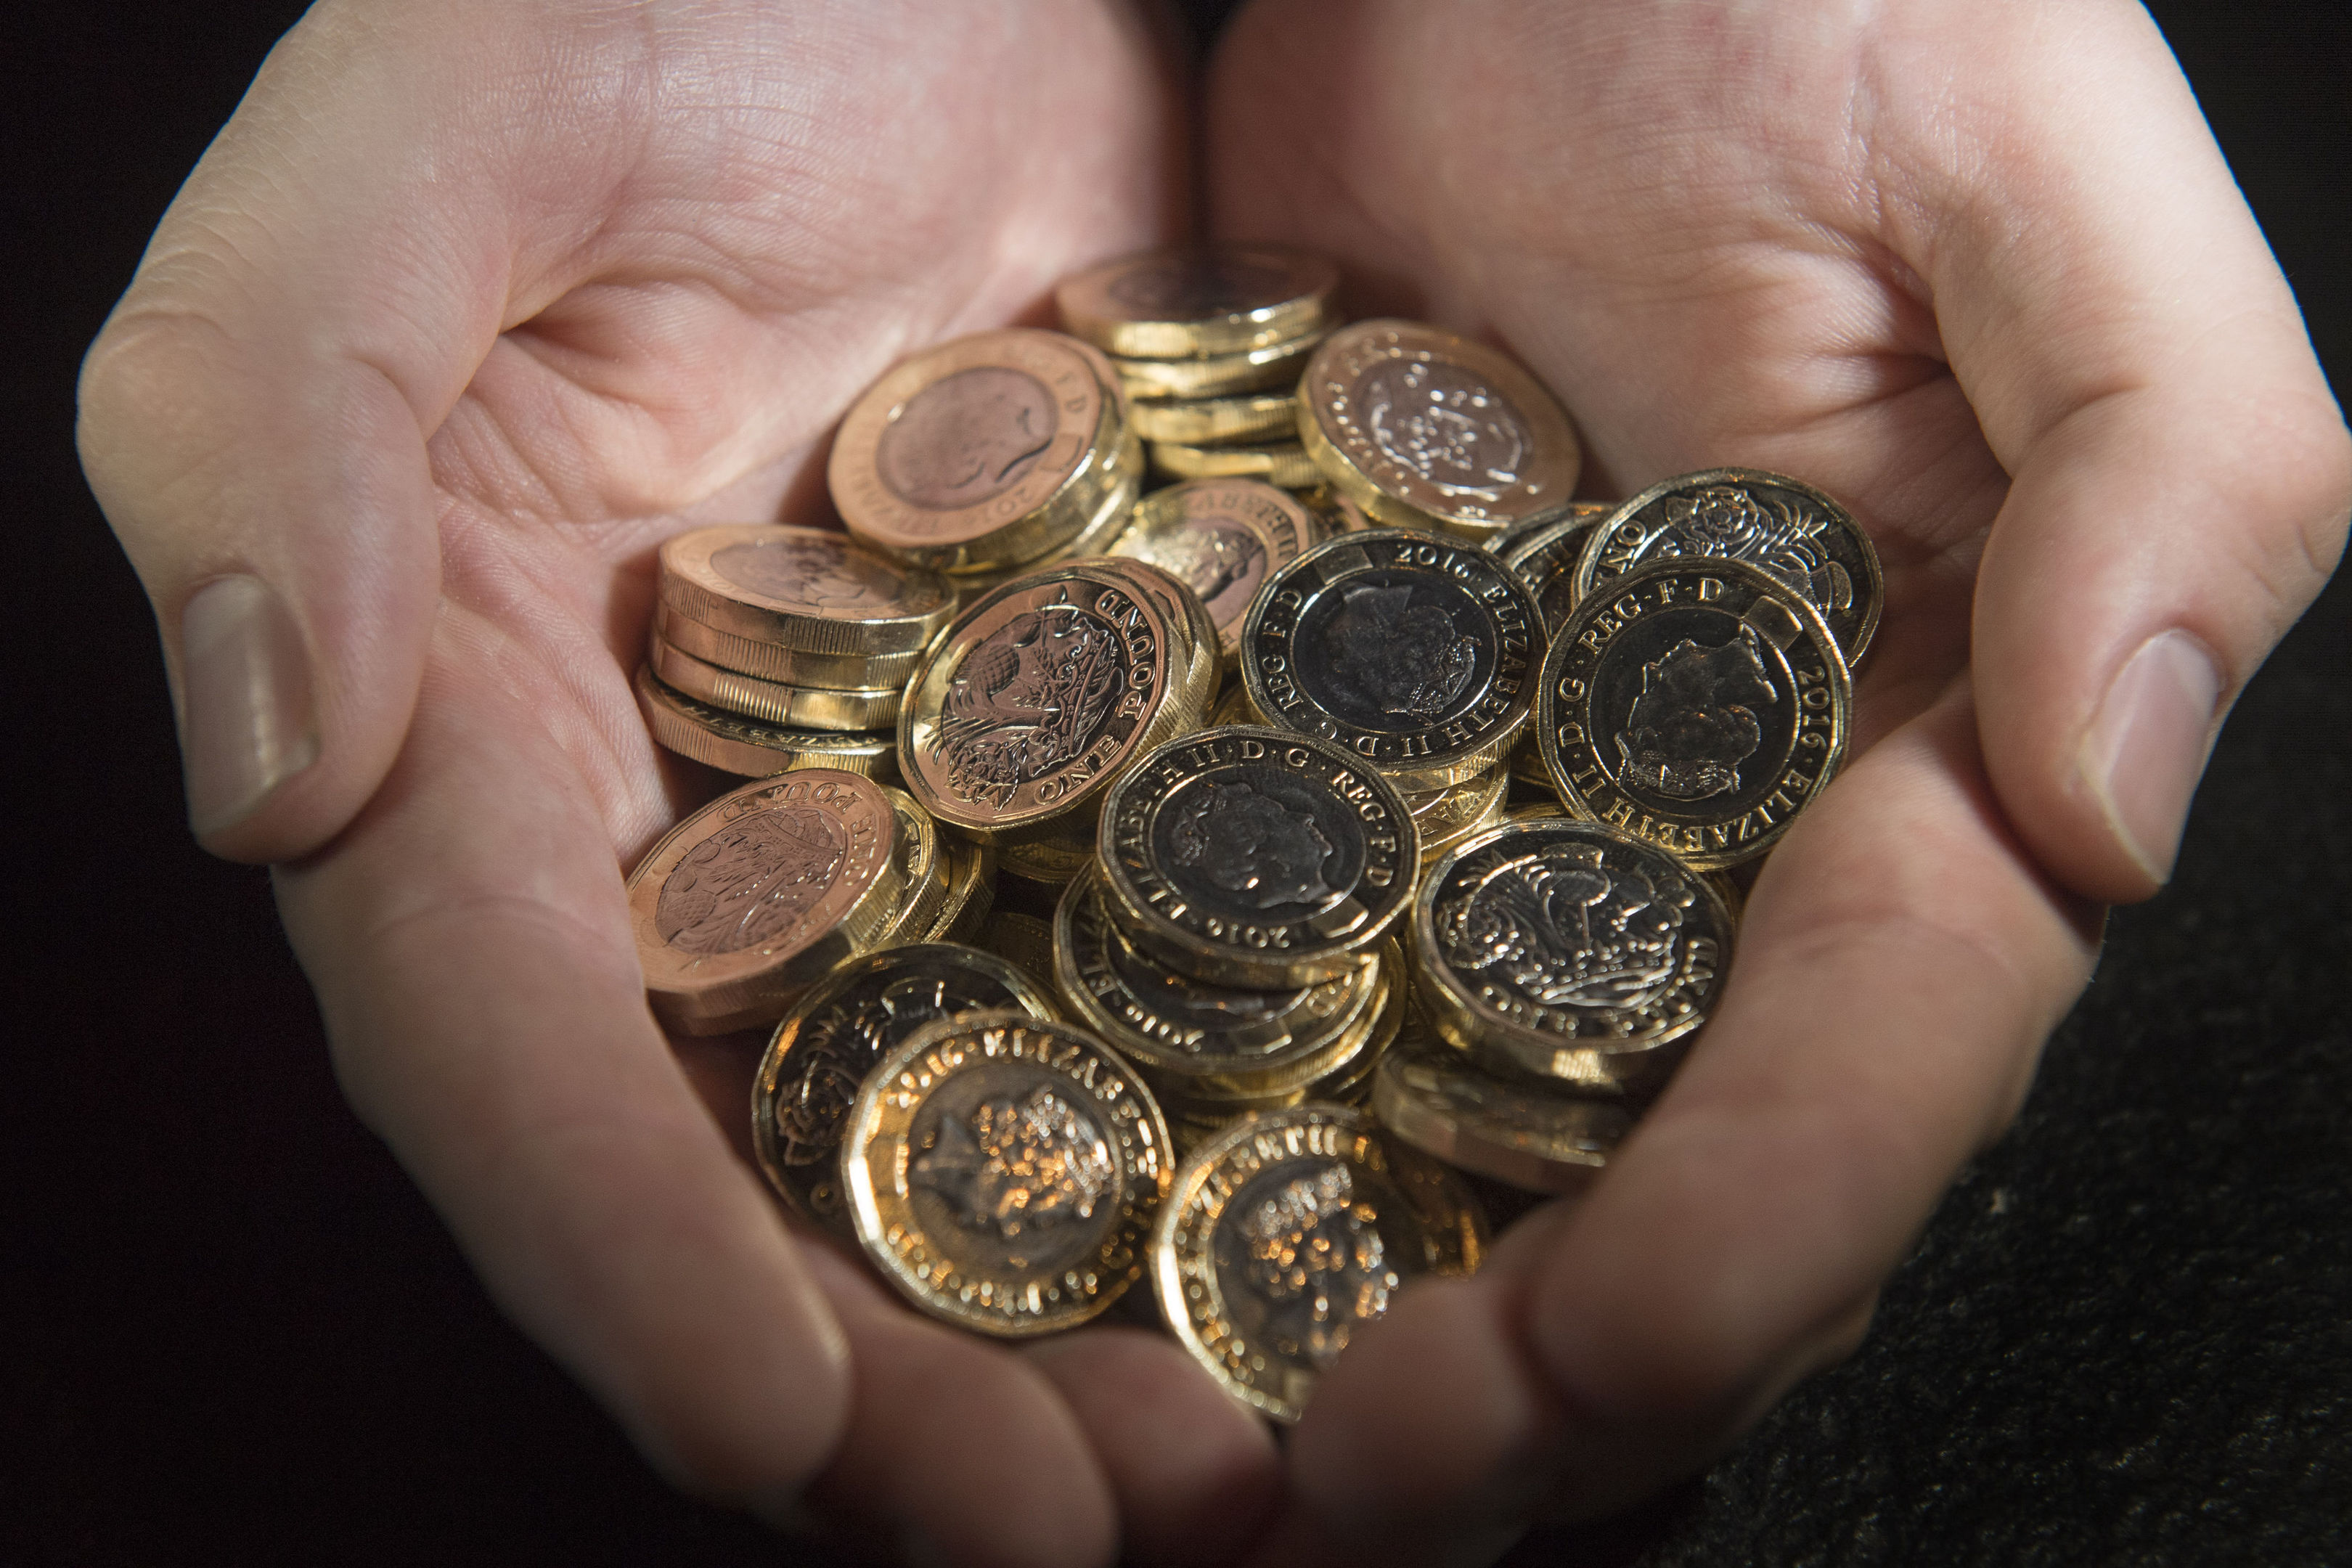 It is thought the Mint's focus on production of the new £1 coin might have been a factor.